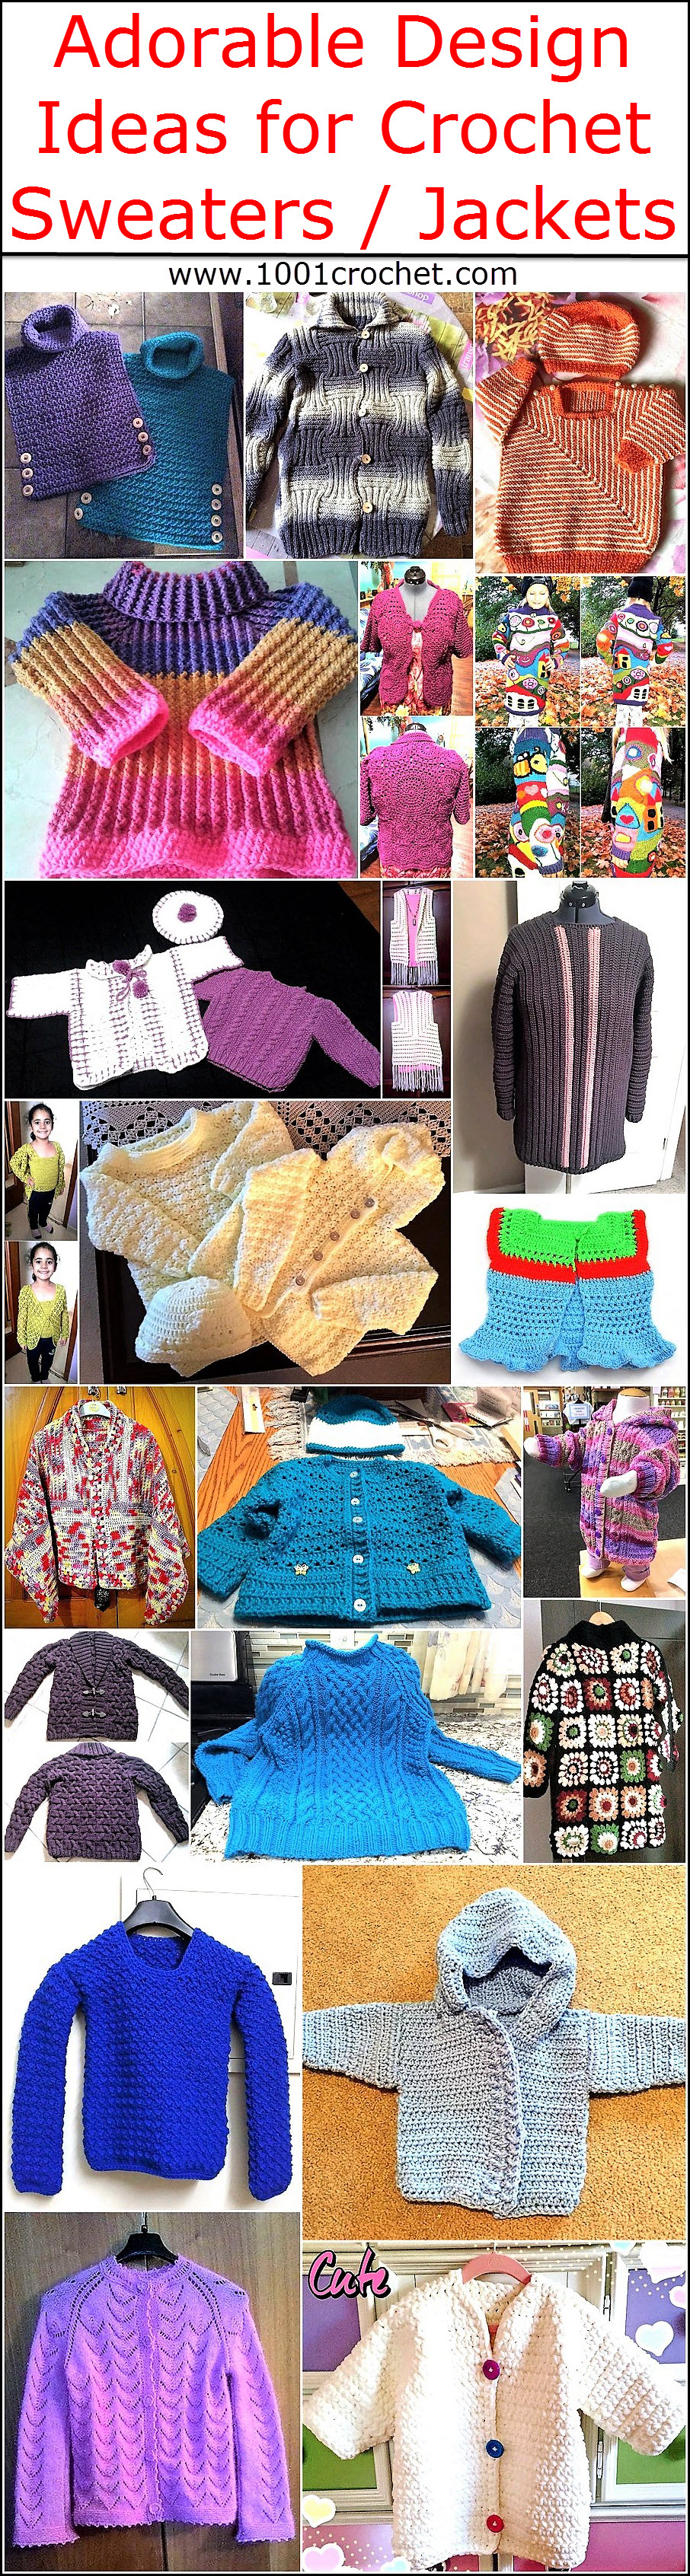 Adorable Design Ideas for Crochet Sweaters Jackets